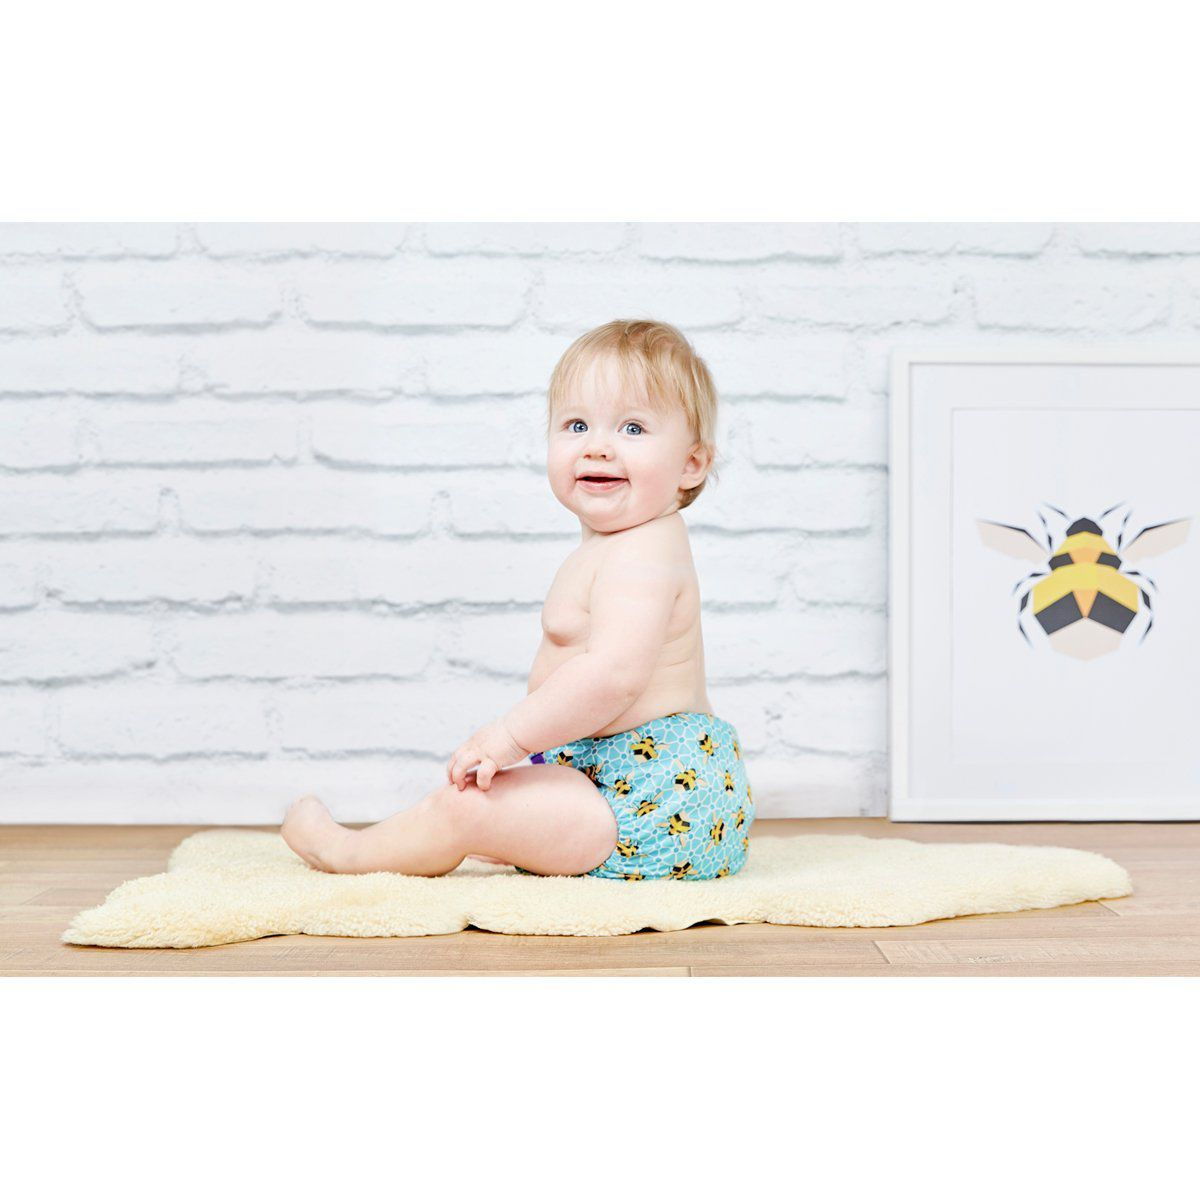 The 7 Best Cloth Diapers To Buy In 2018